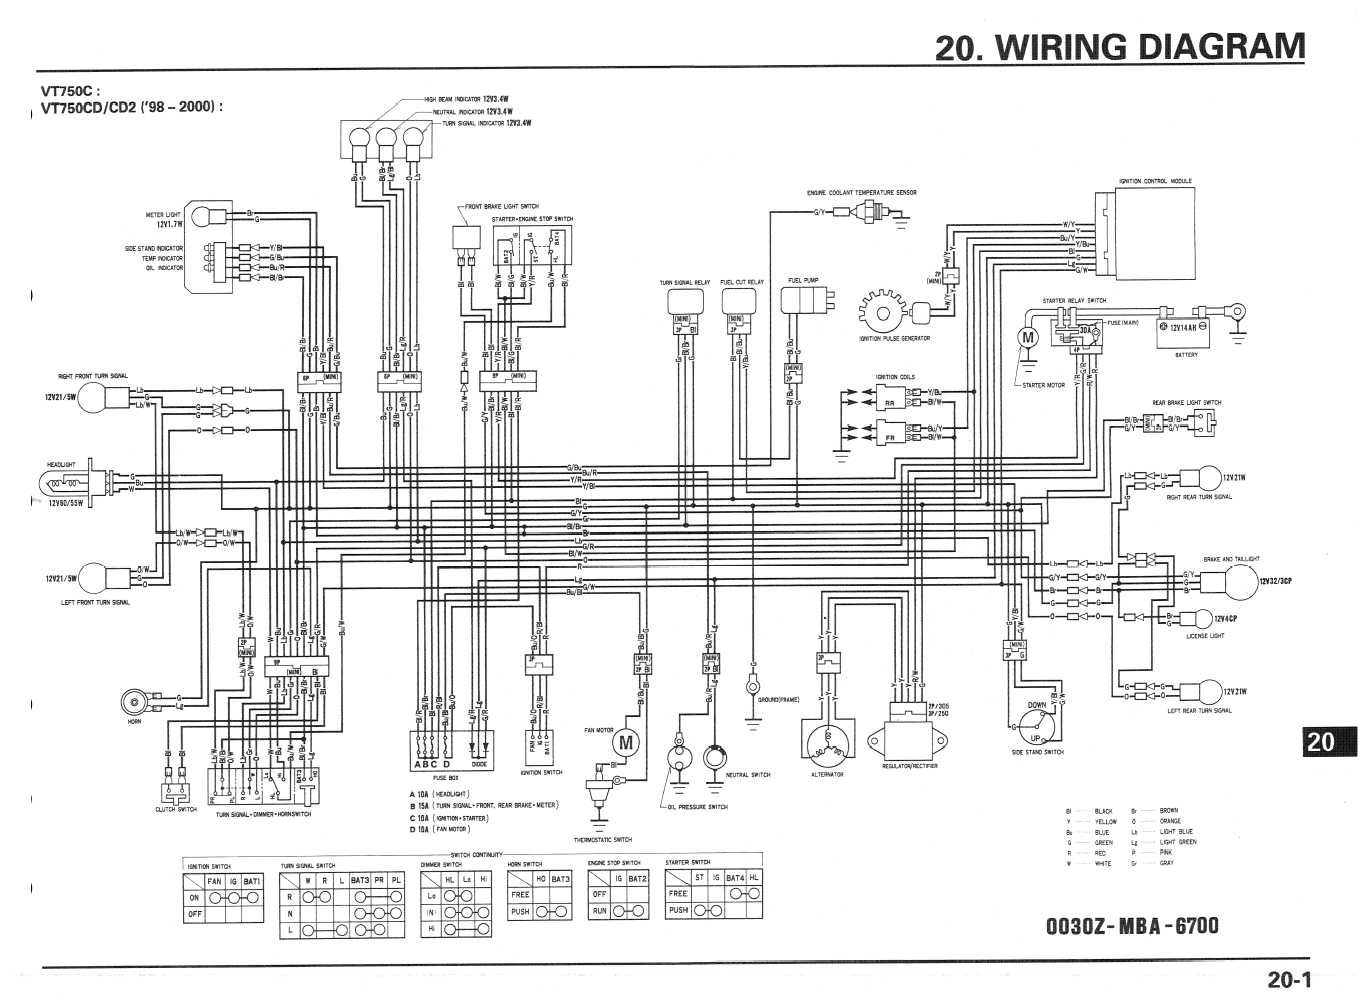 Vt1100 Wiring Diagram on Honda Cx500 Wiring Diagram